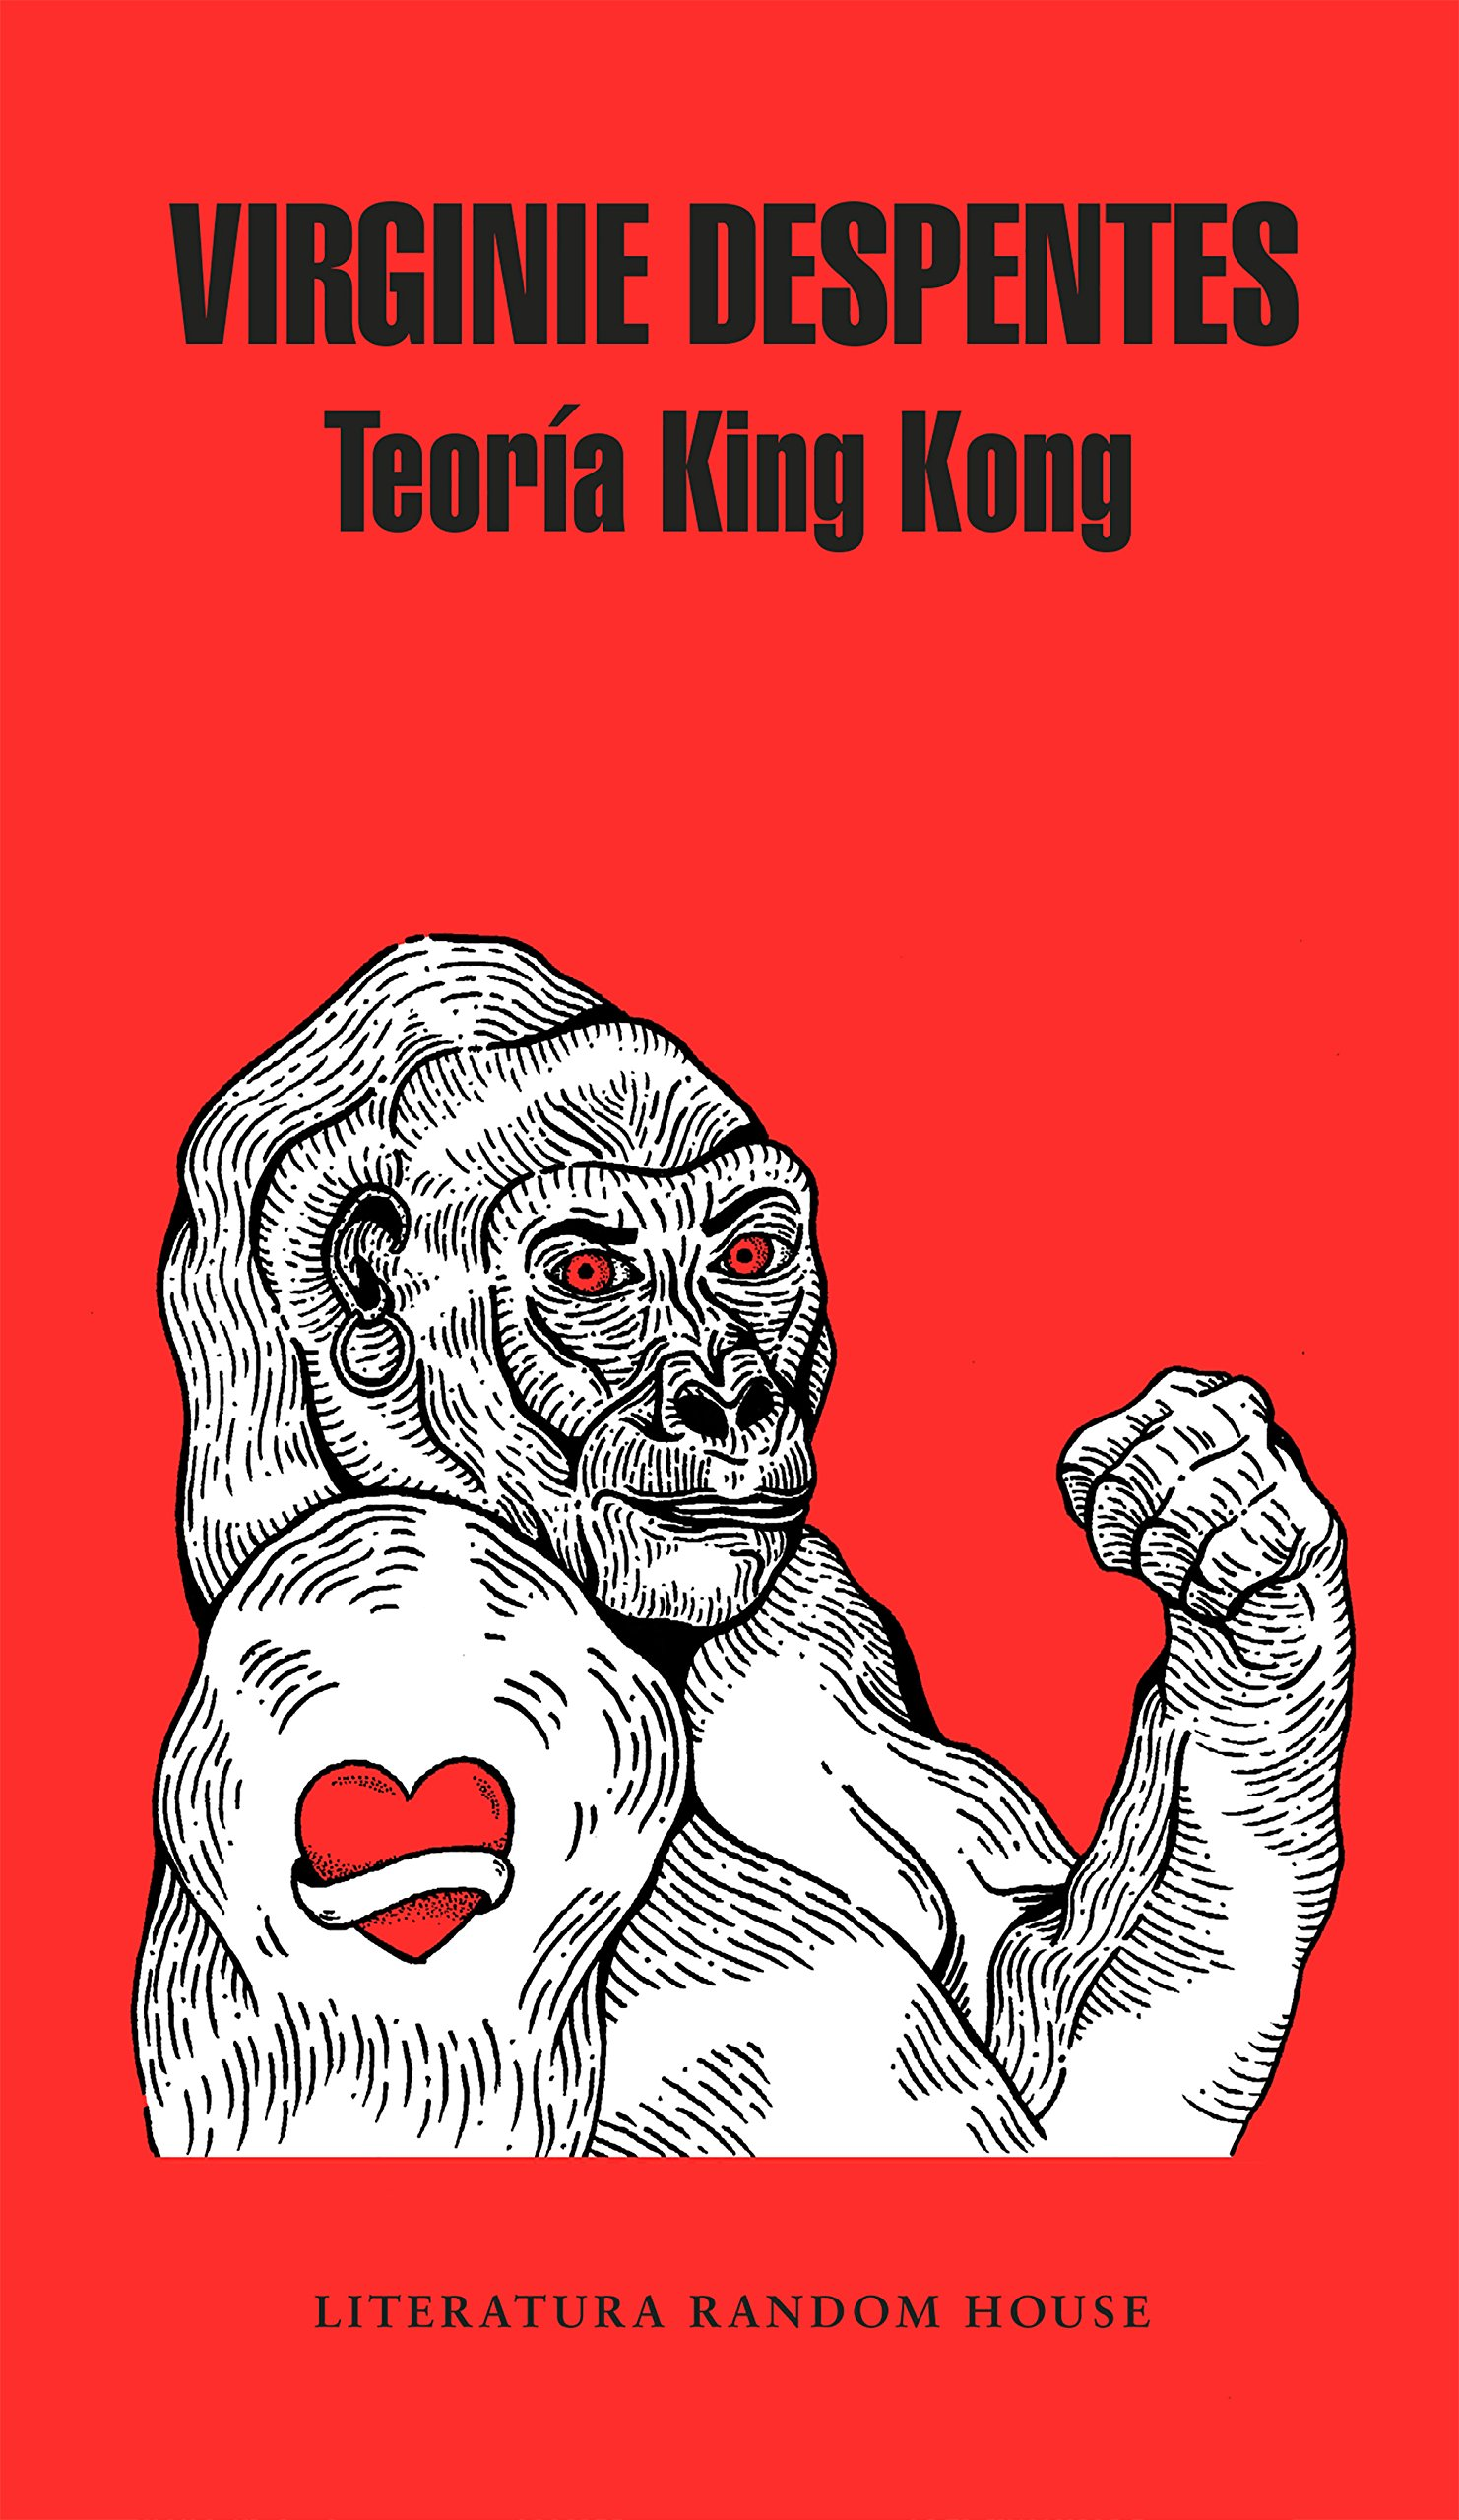 Amazon.com: Teoría King Kong (Literatura Random House) (Spanish Edition) (9788439733850): Despentes, Virginie, BEATRIZ PRECIADO, PAUL;: Books